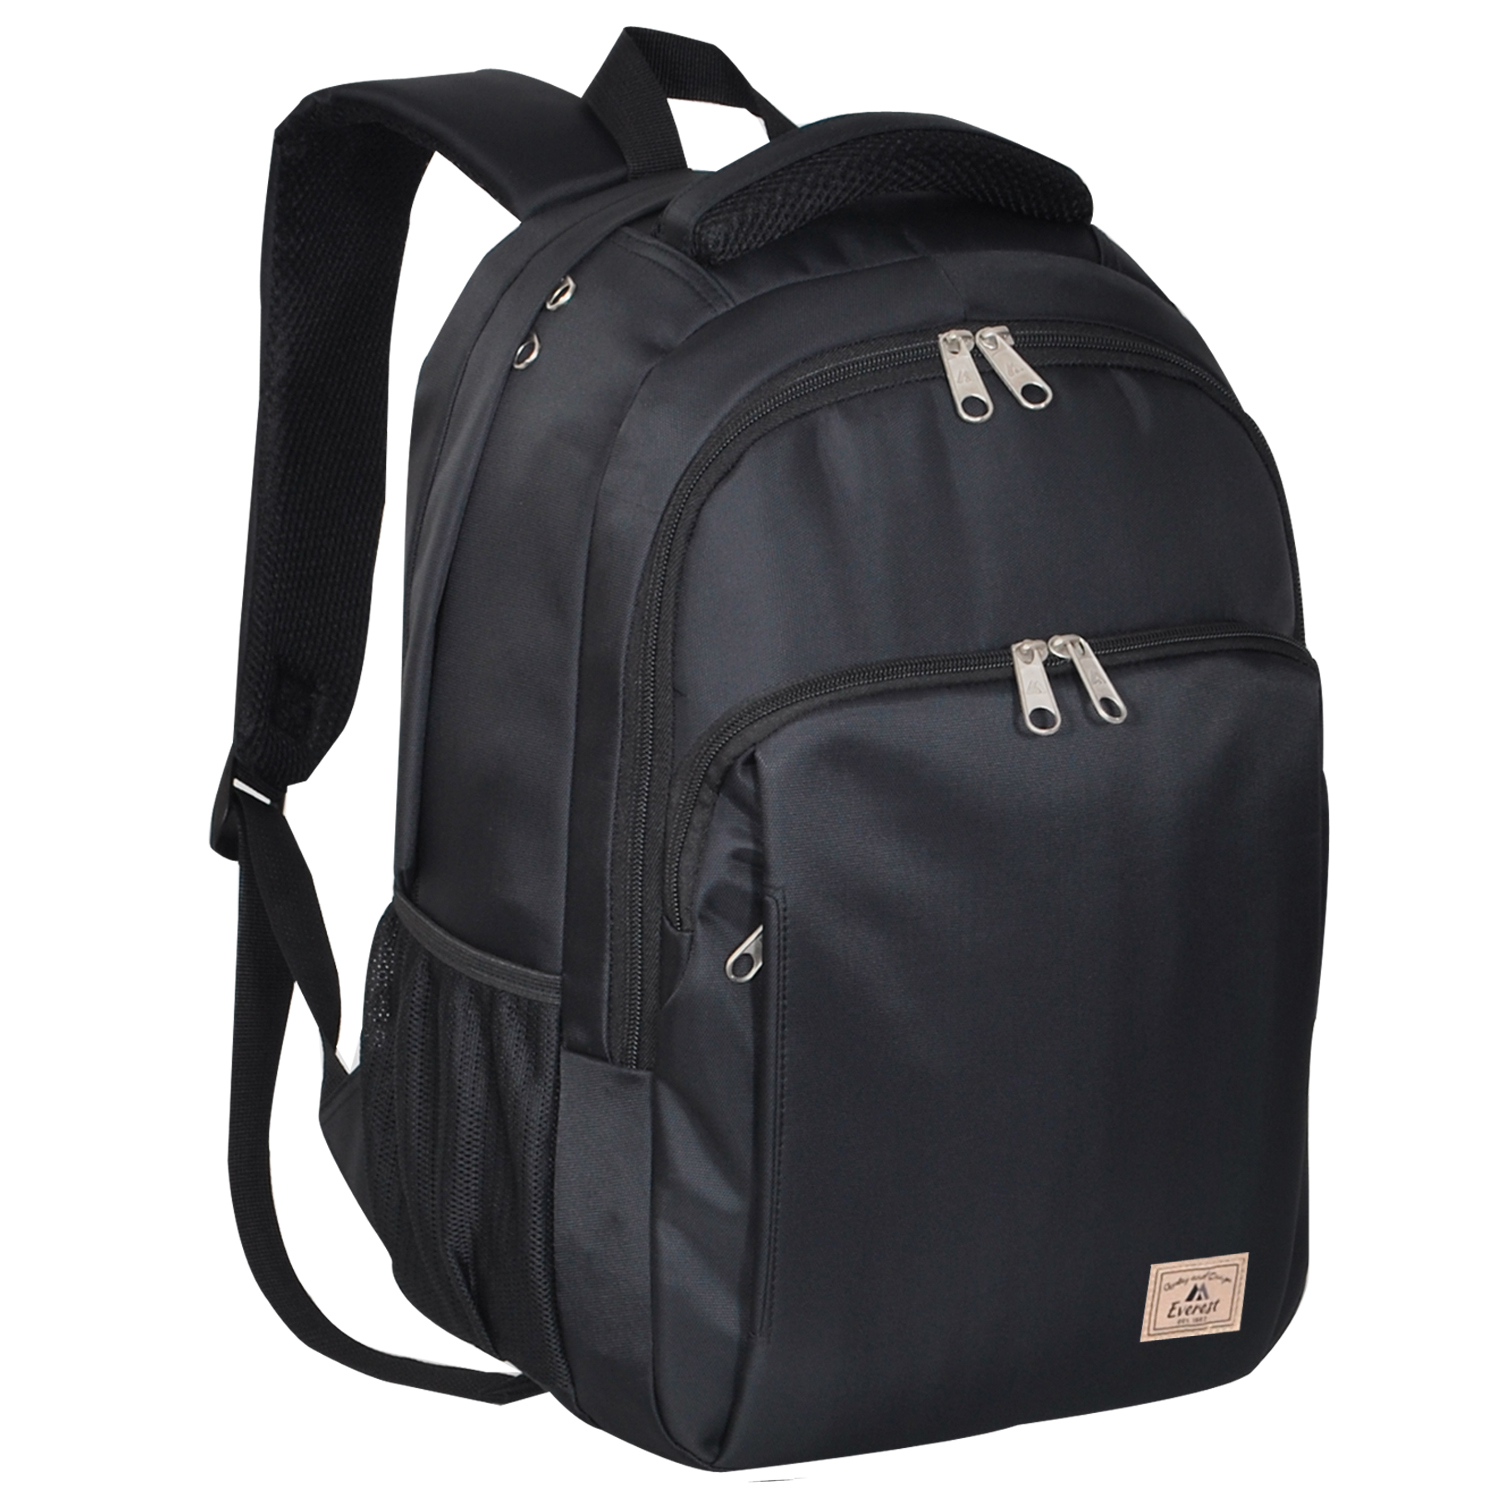 Everest City Traveler Backpack